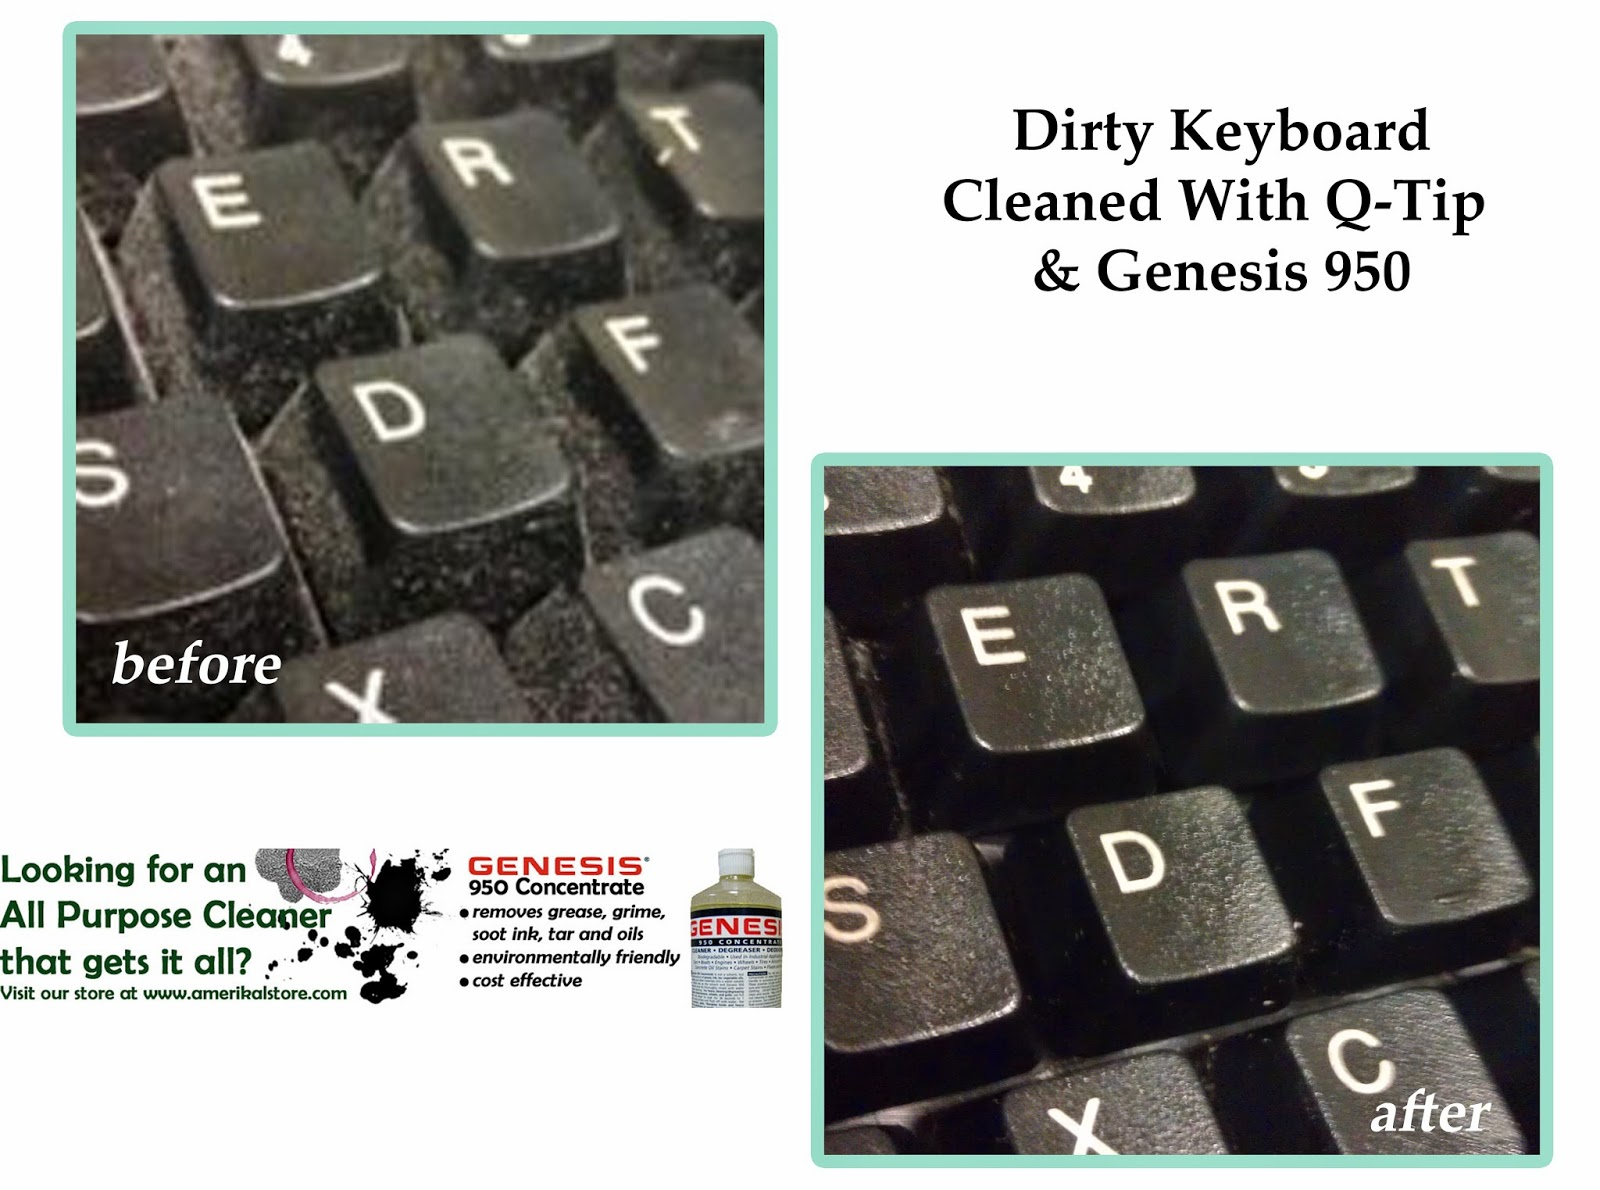 Clean Keyboards